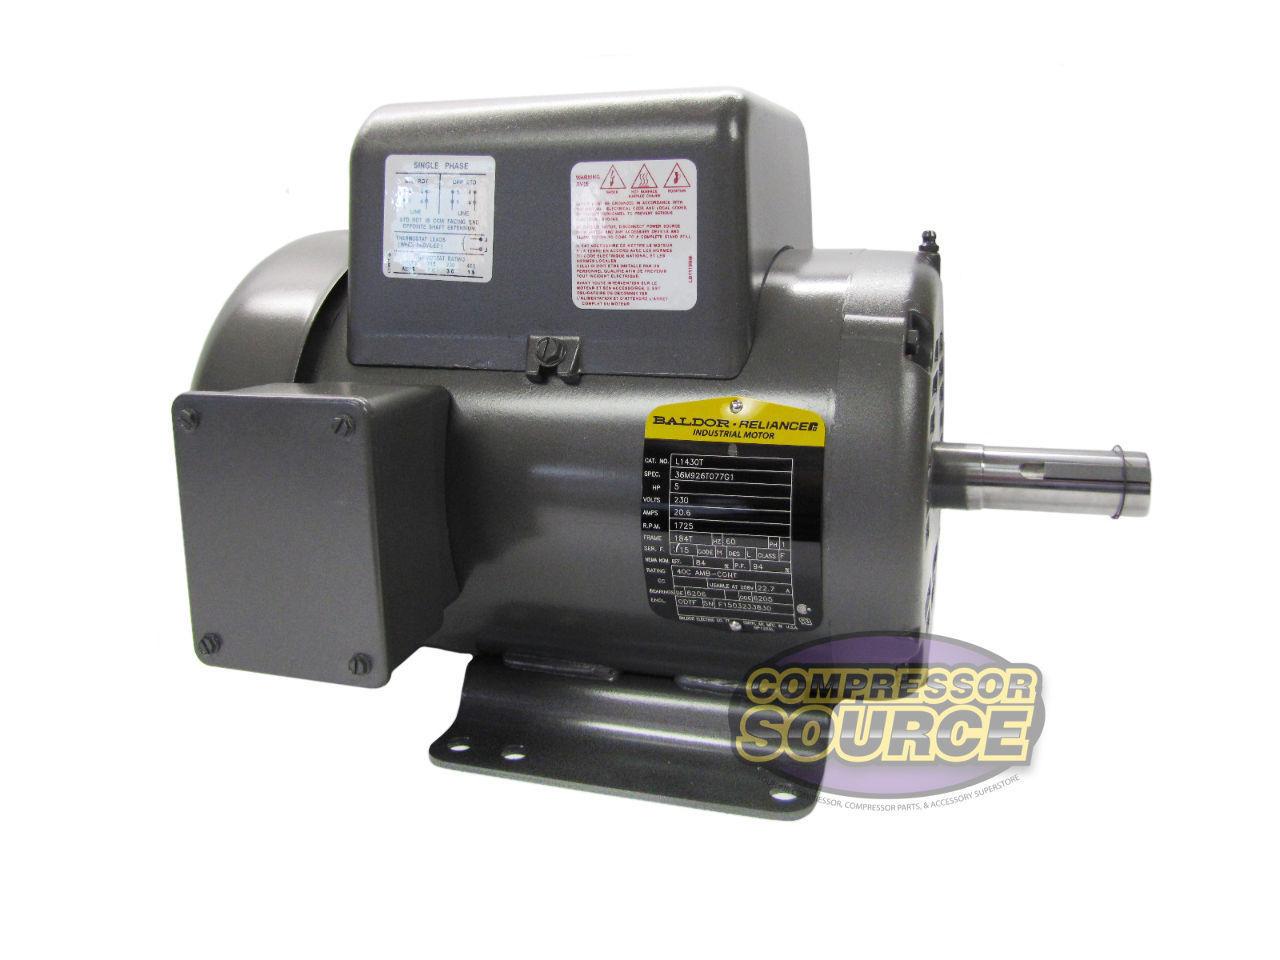 l1430t_807__1 5 hp single phase baldor electric compressor motor 184t frame Baldor 3 Phase Wiring Diagram at mifinder.co